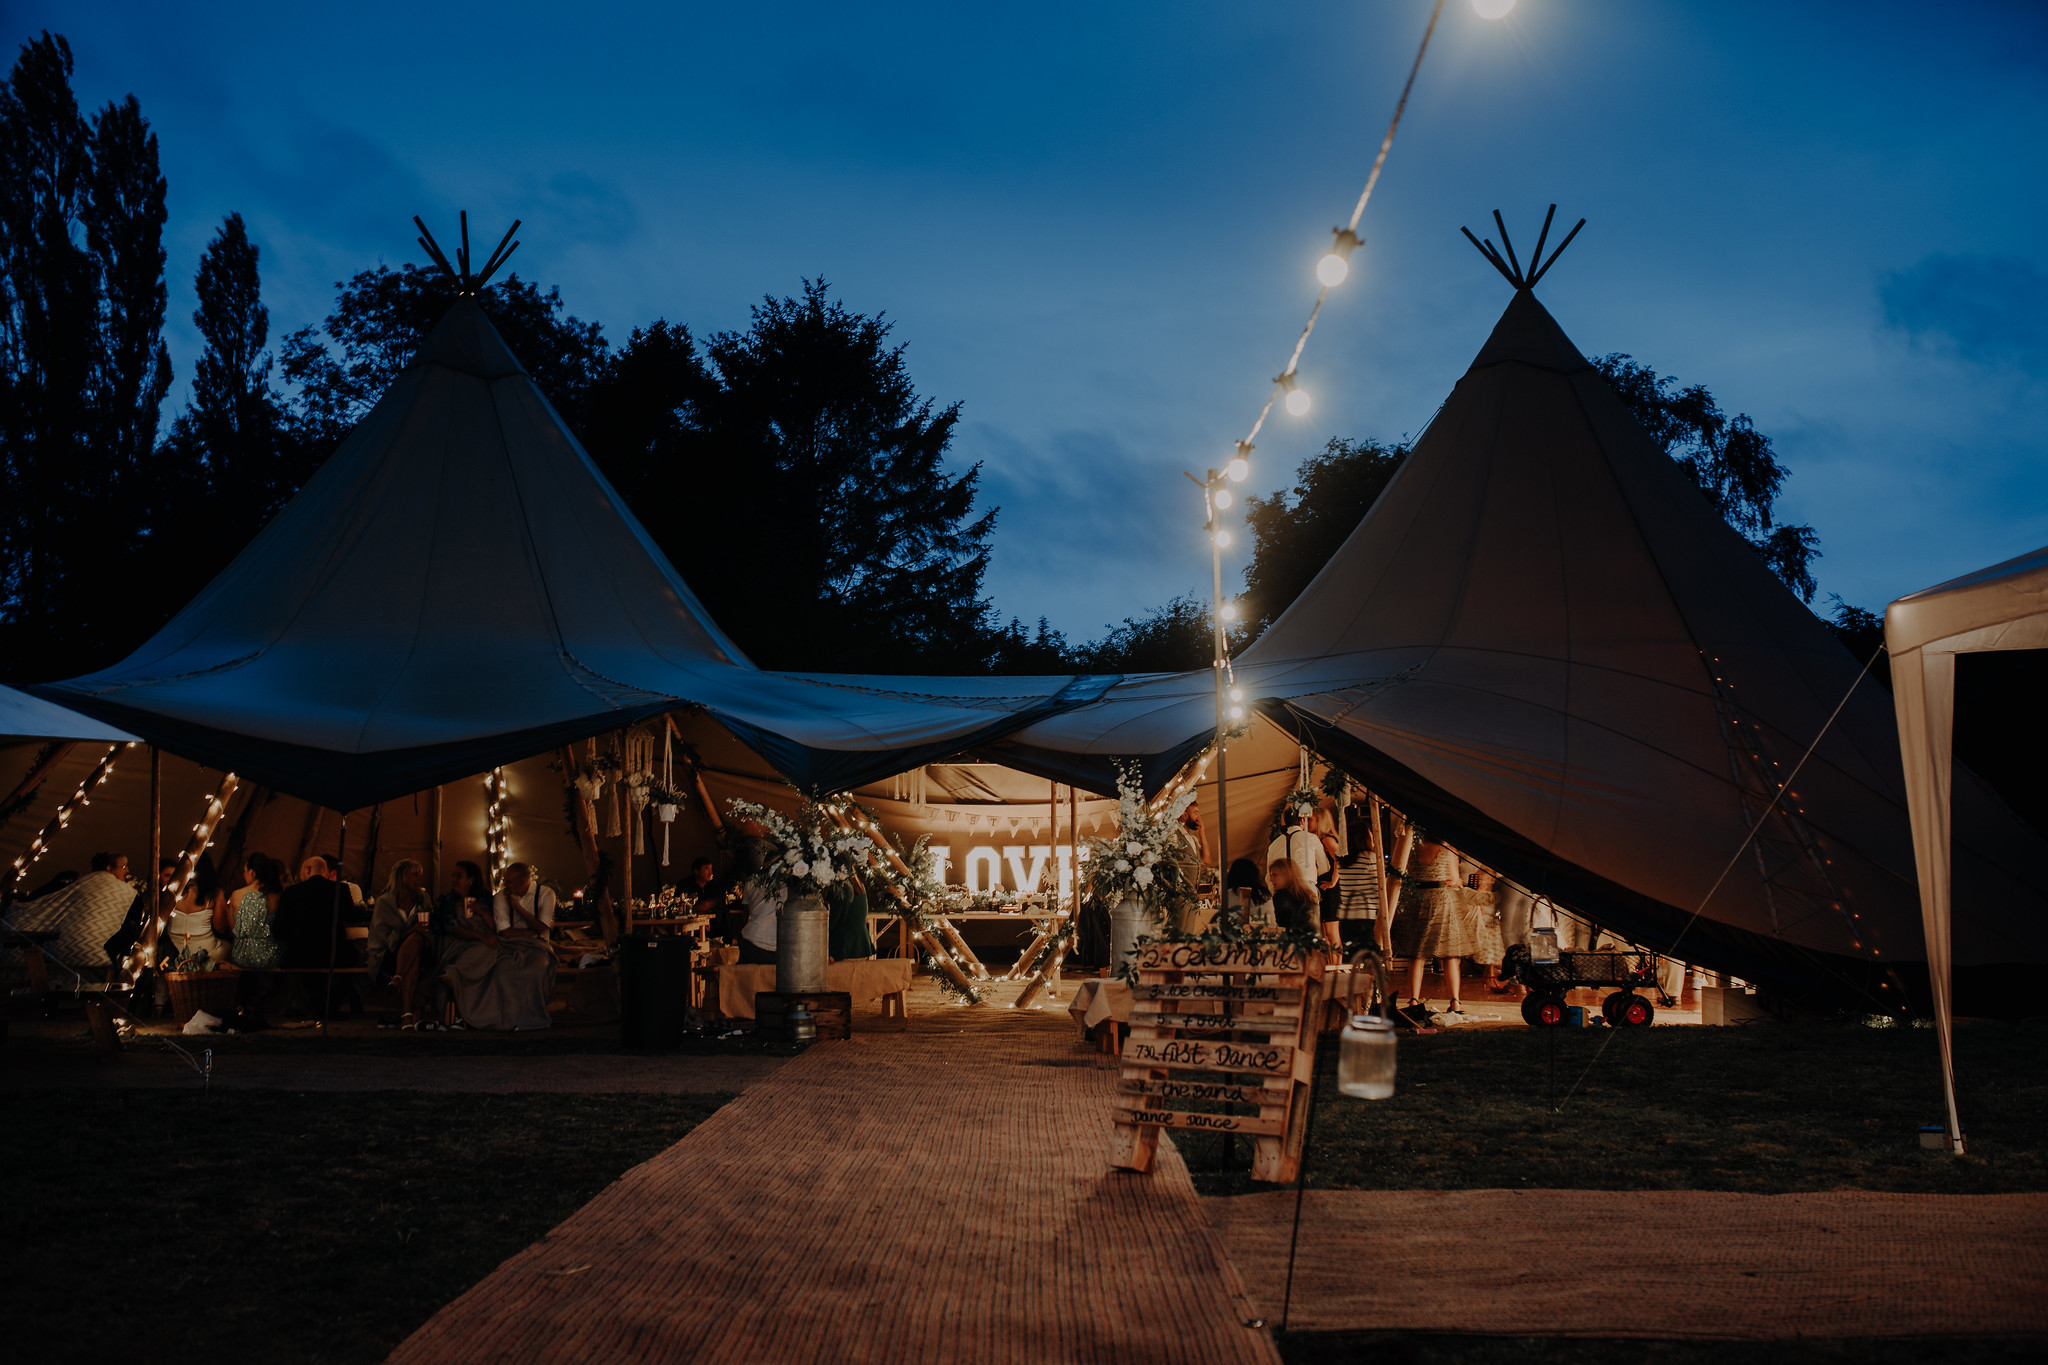 Tipi Unique wedding set up